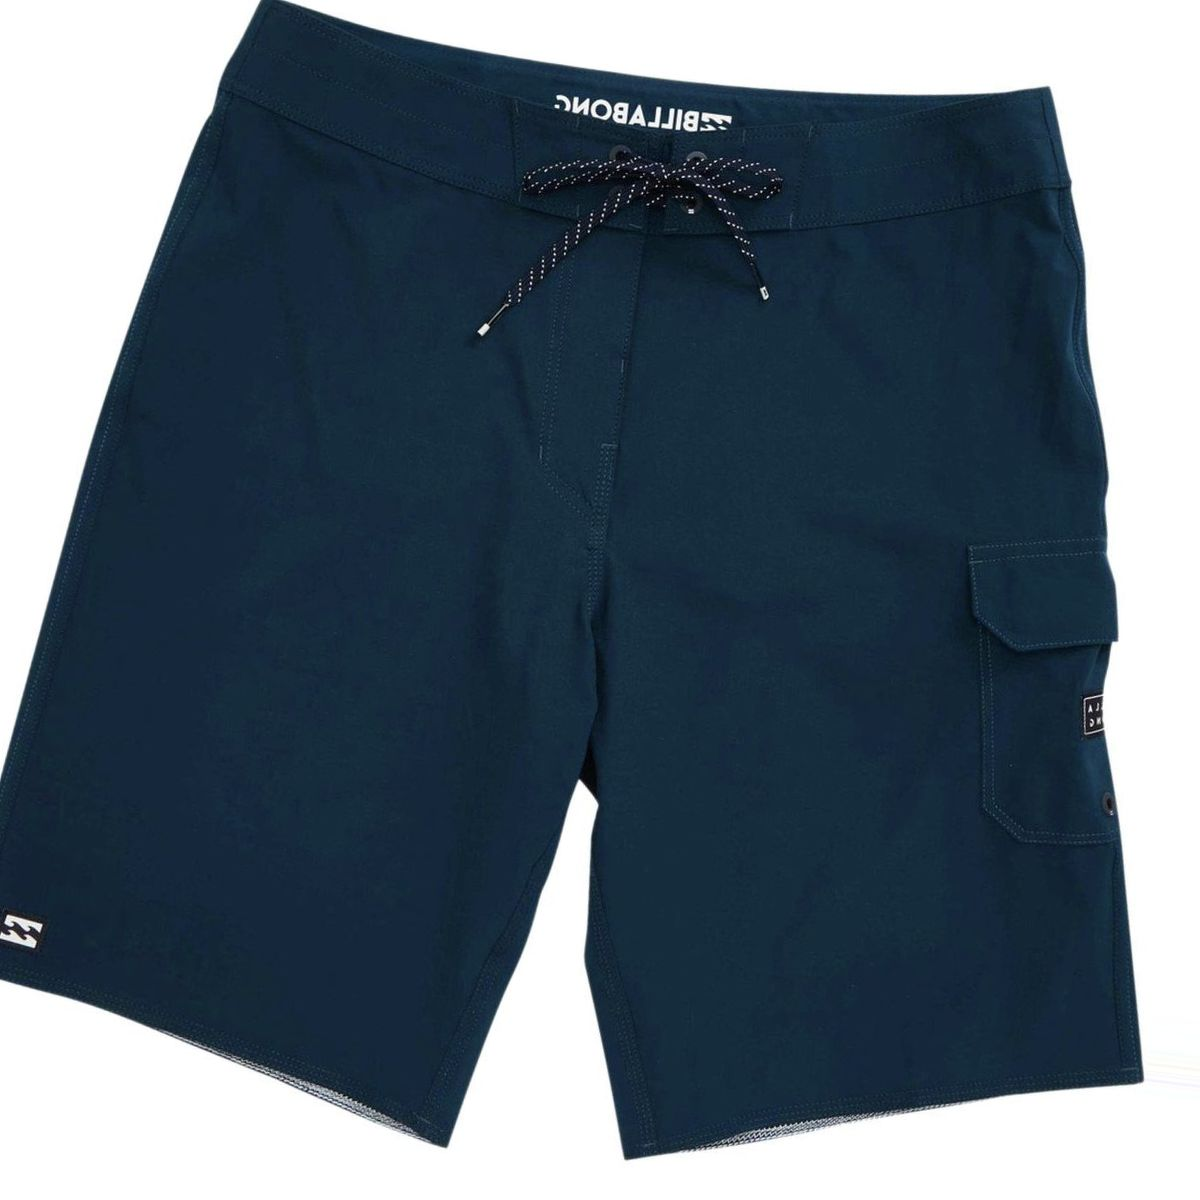 Billabong All Day Pro Board Short - Men's